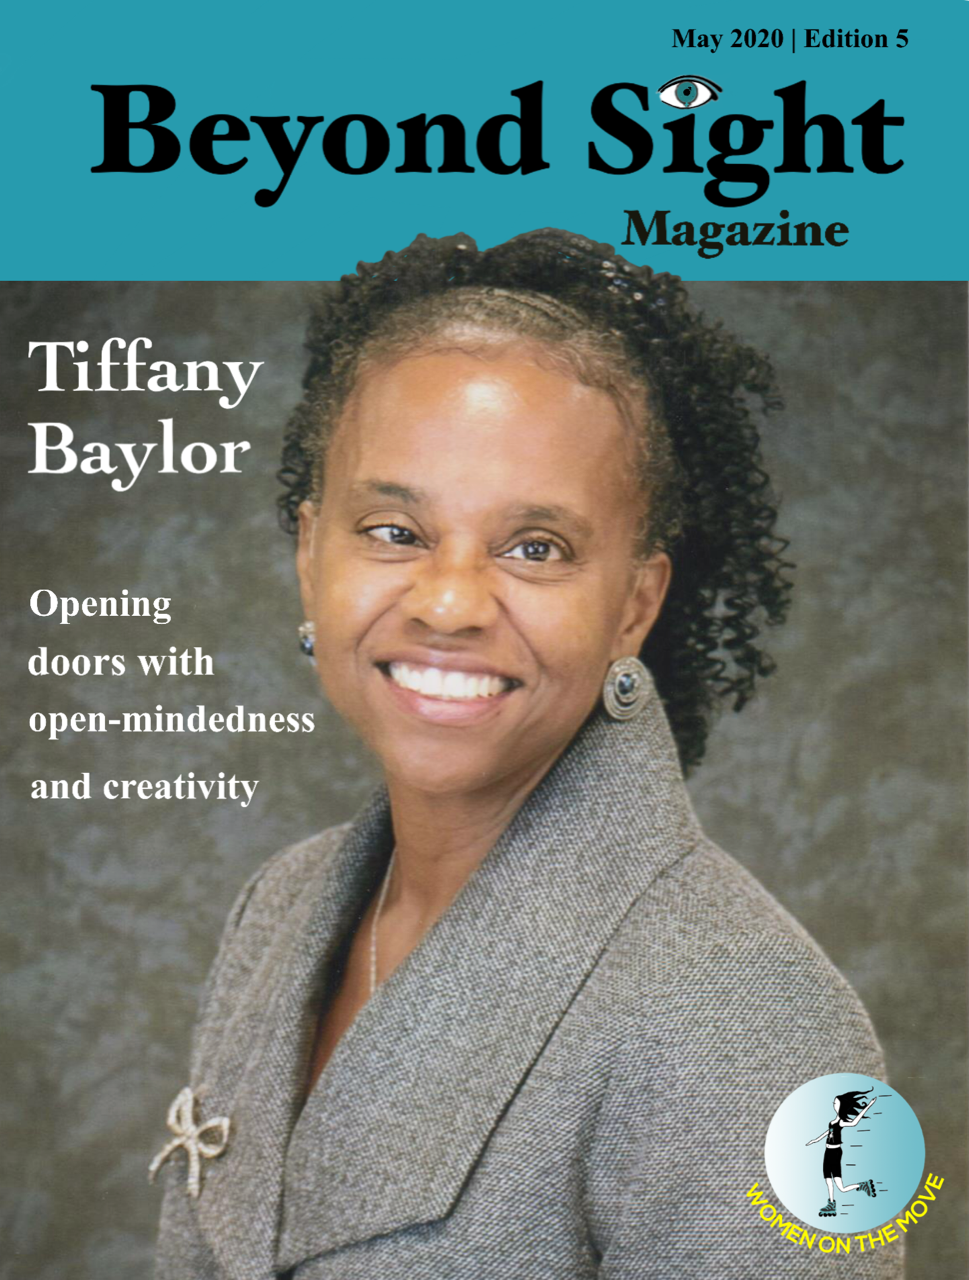 Beyond Sight Magazine Cover is described in the body of the post.